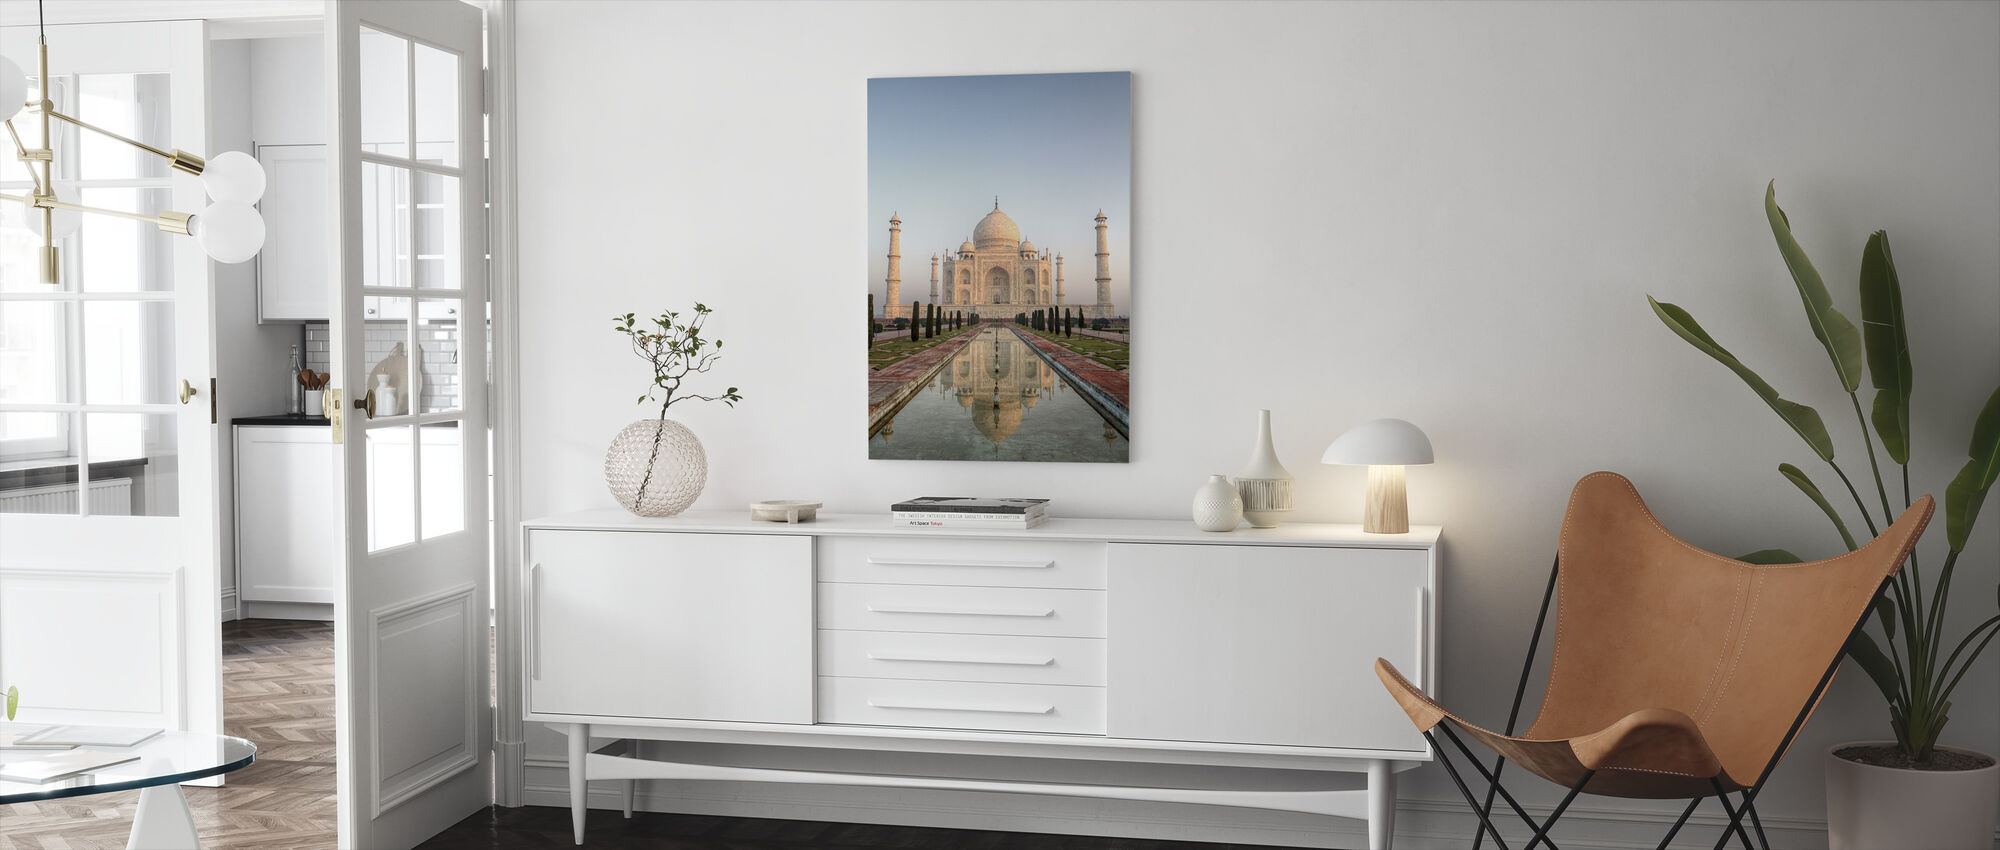 Sunrise at Taj Mahal - Canvas print - Living Room